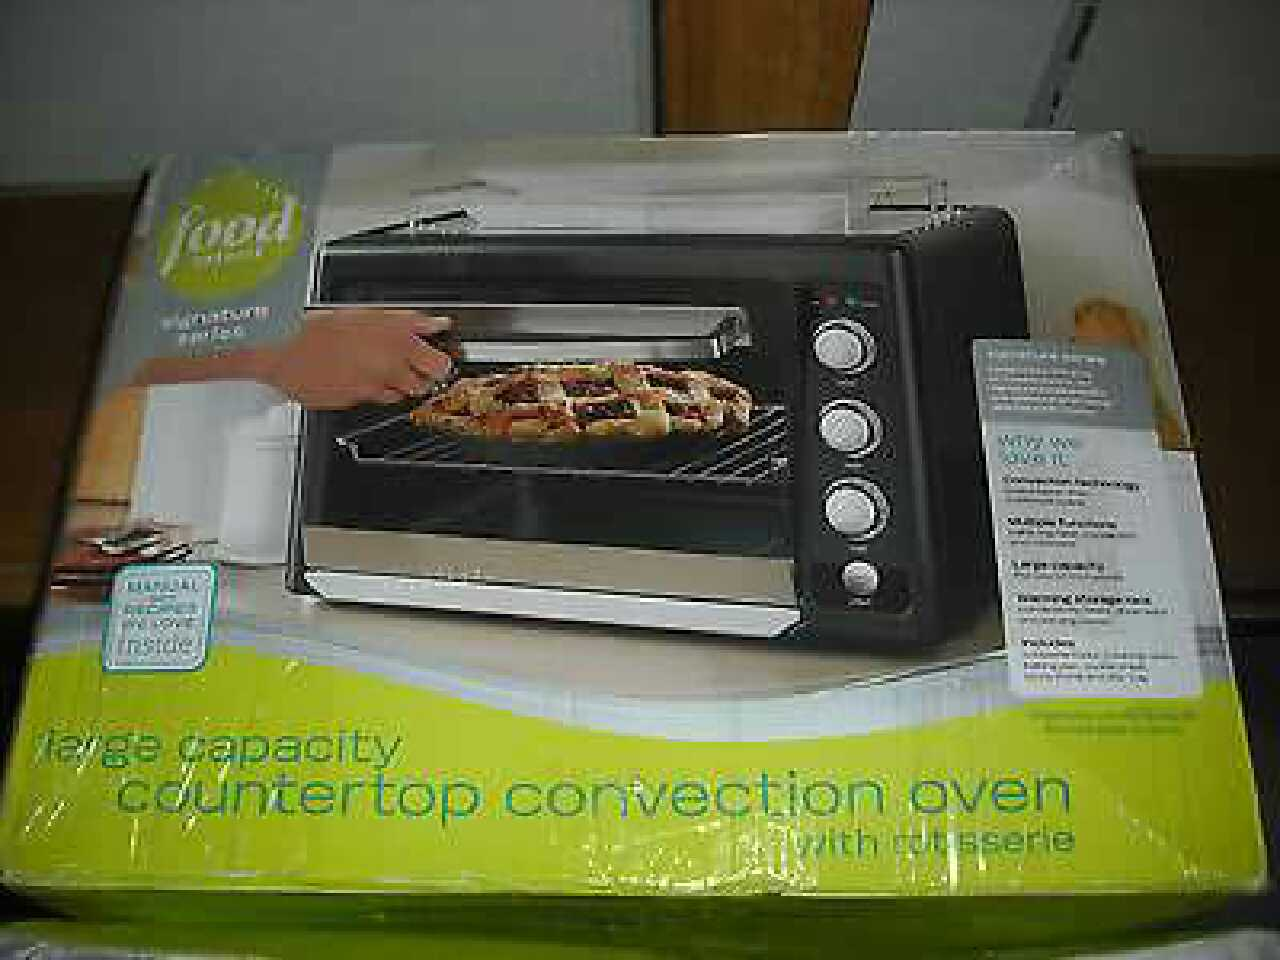 Food Network Convection Oven With Rotisserie